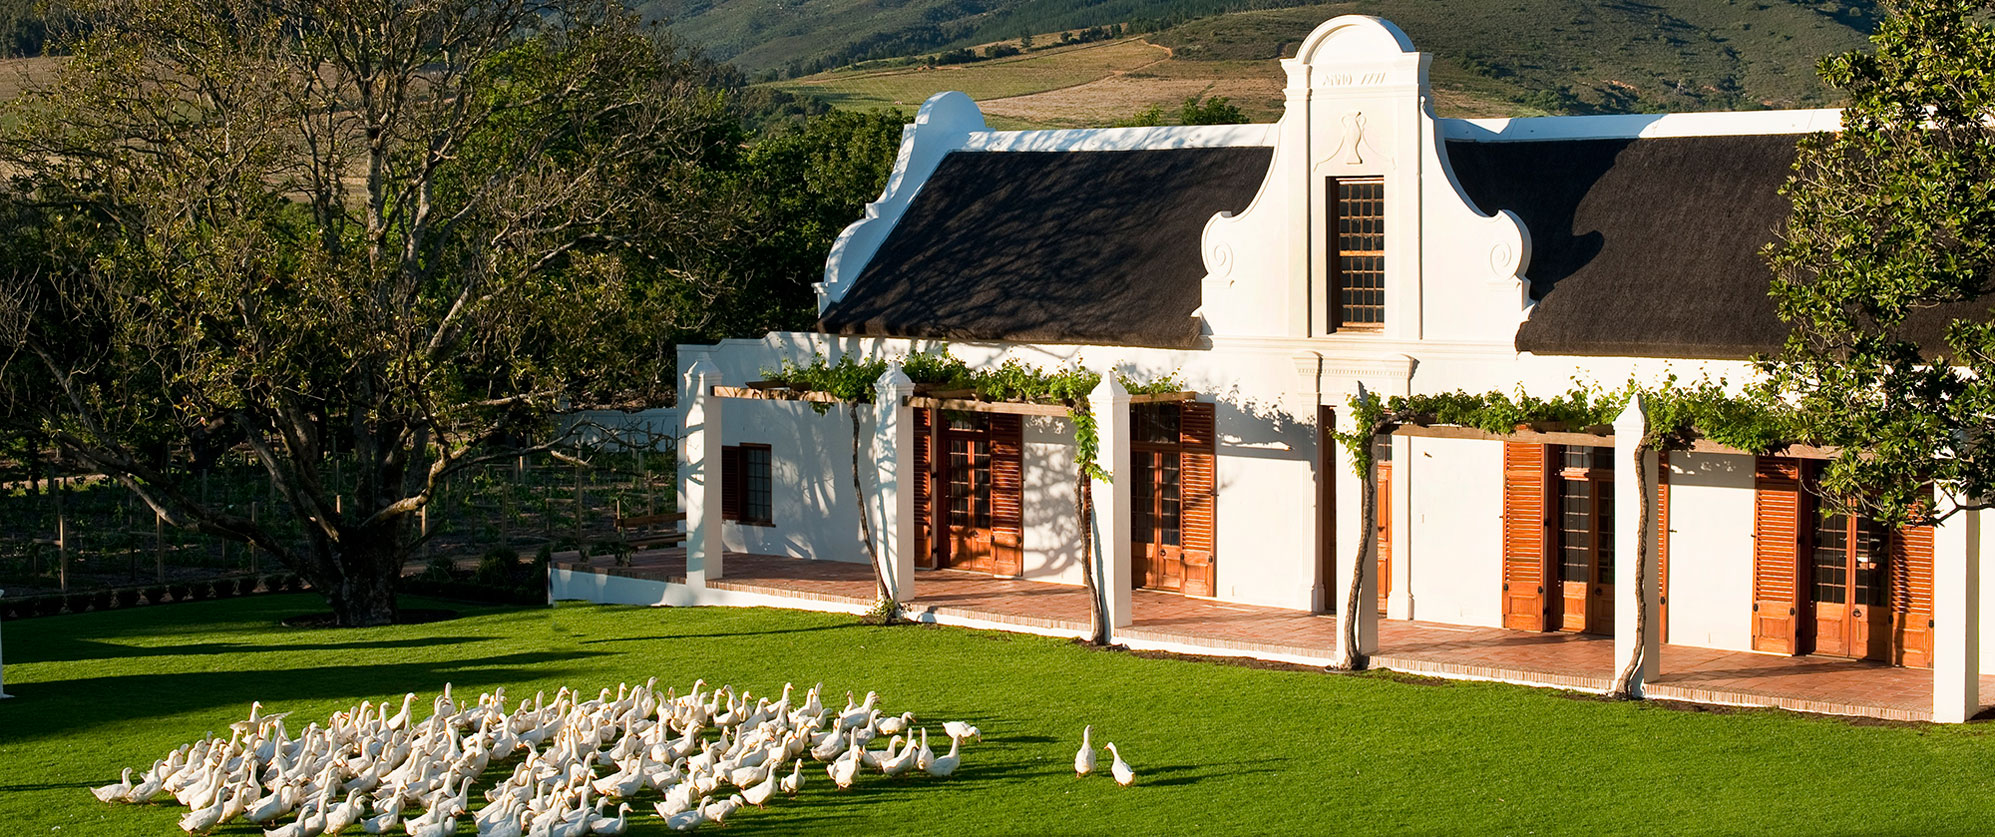 South Africa Gourmet Culinary Tour - South Africa - Western Cape